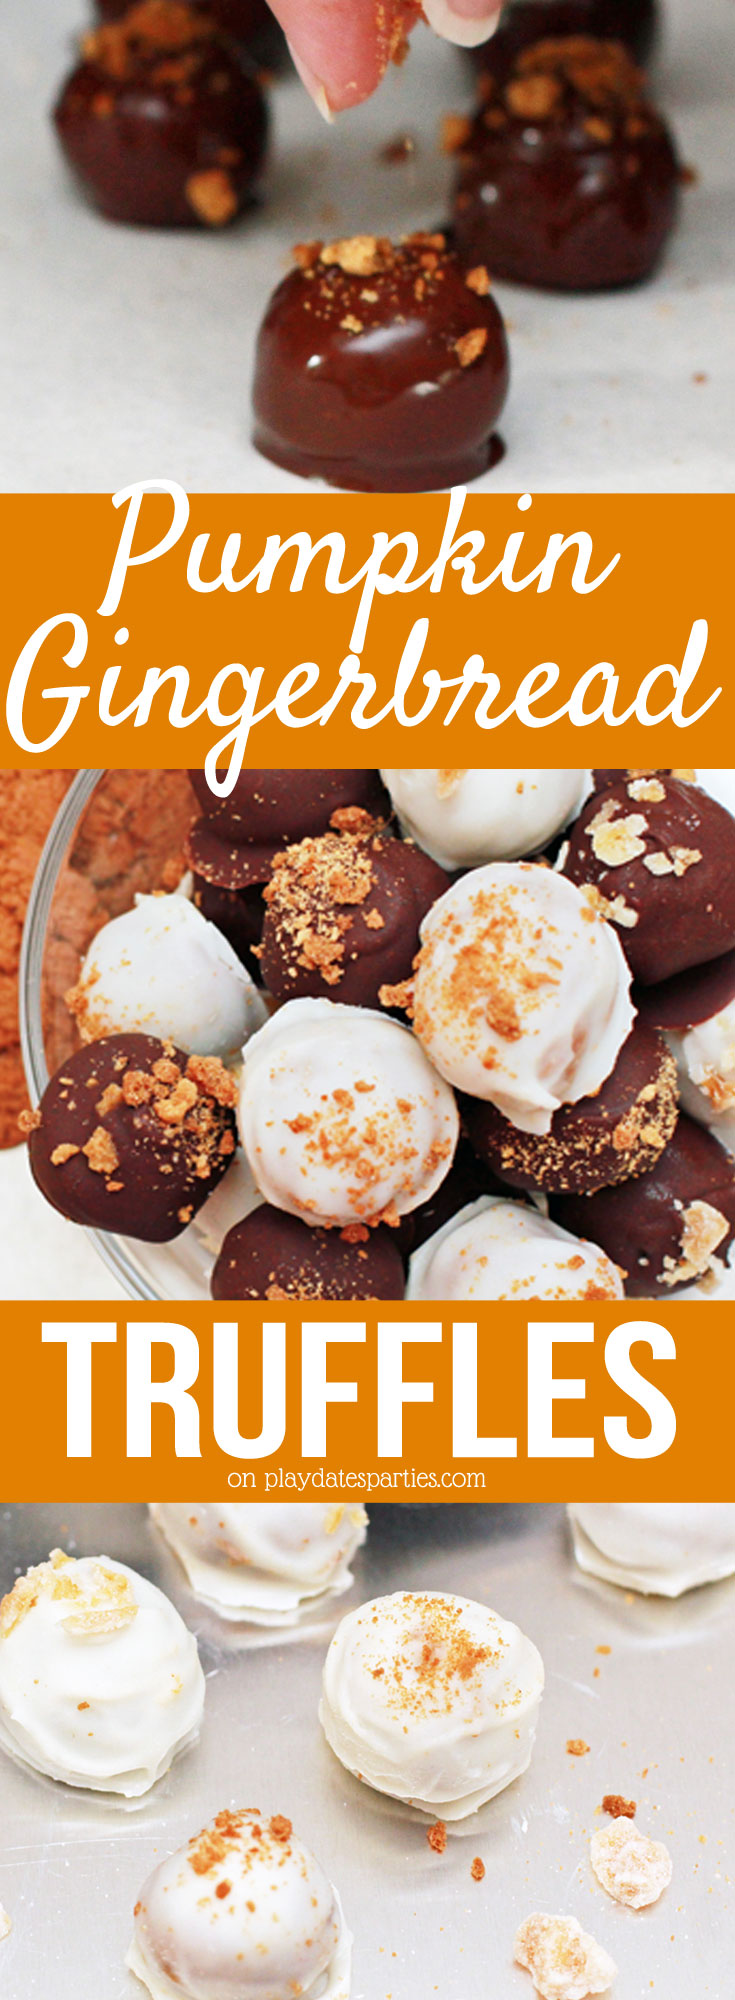 You won't be able to stop eating these #pumpkin gingerbread truffles! With two #recipes to choose from - #chocolate pumpkin gingerbread truffles and pumpkin cream cheese truffles- you'll be hooked. Yum!